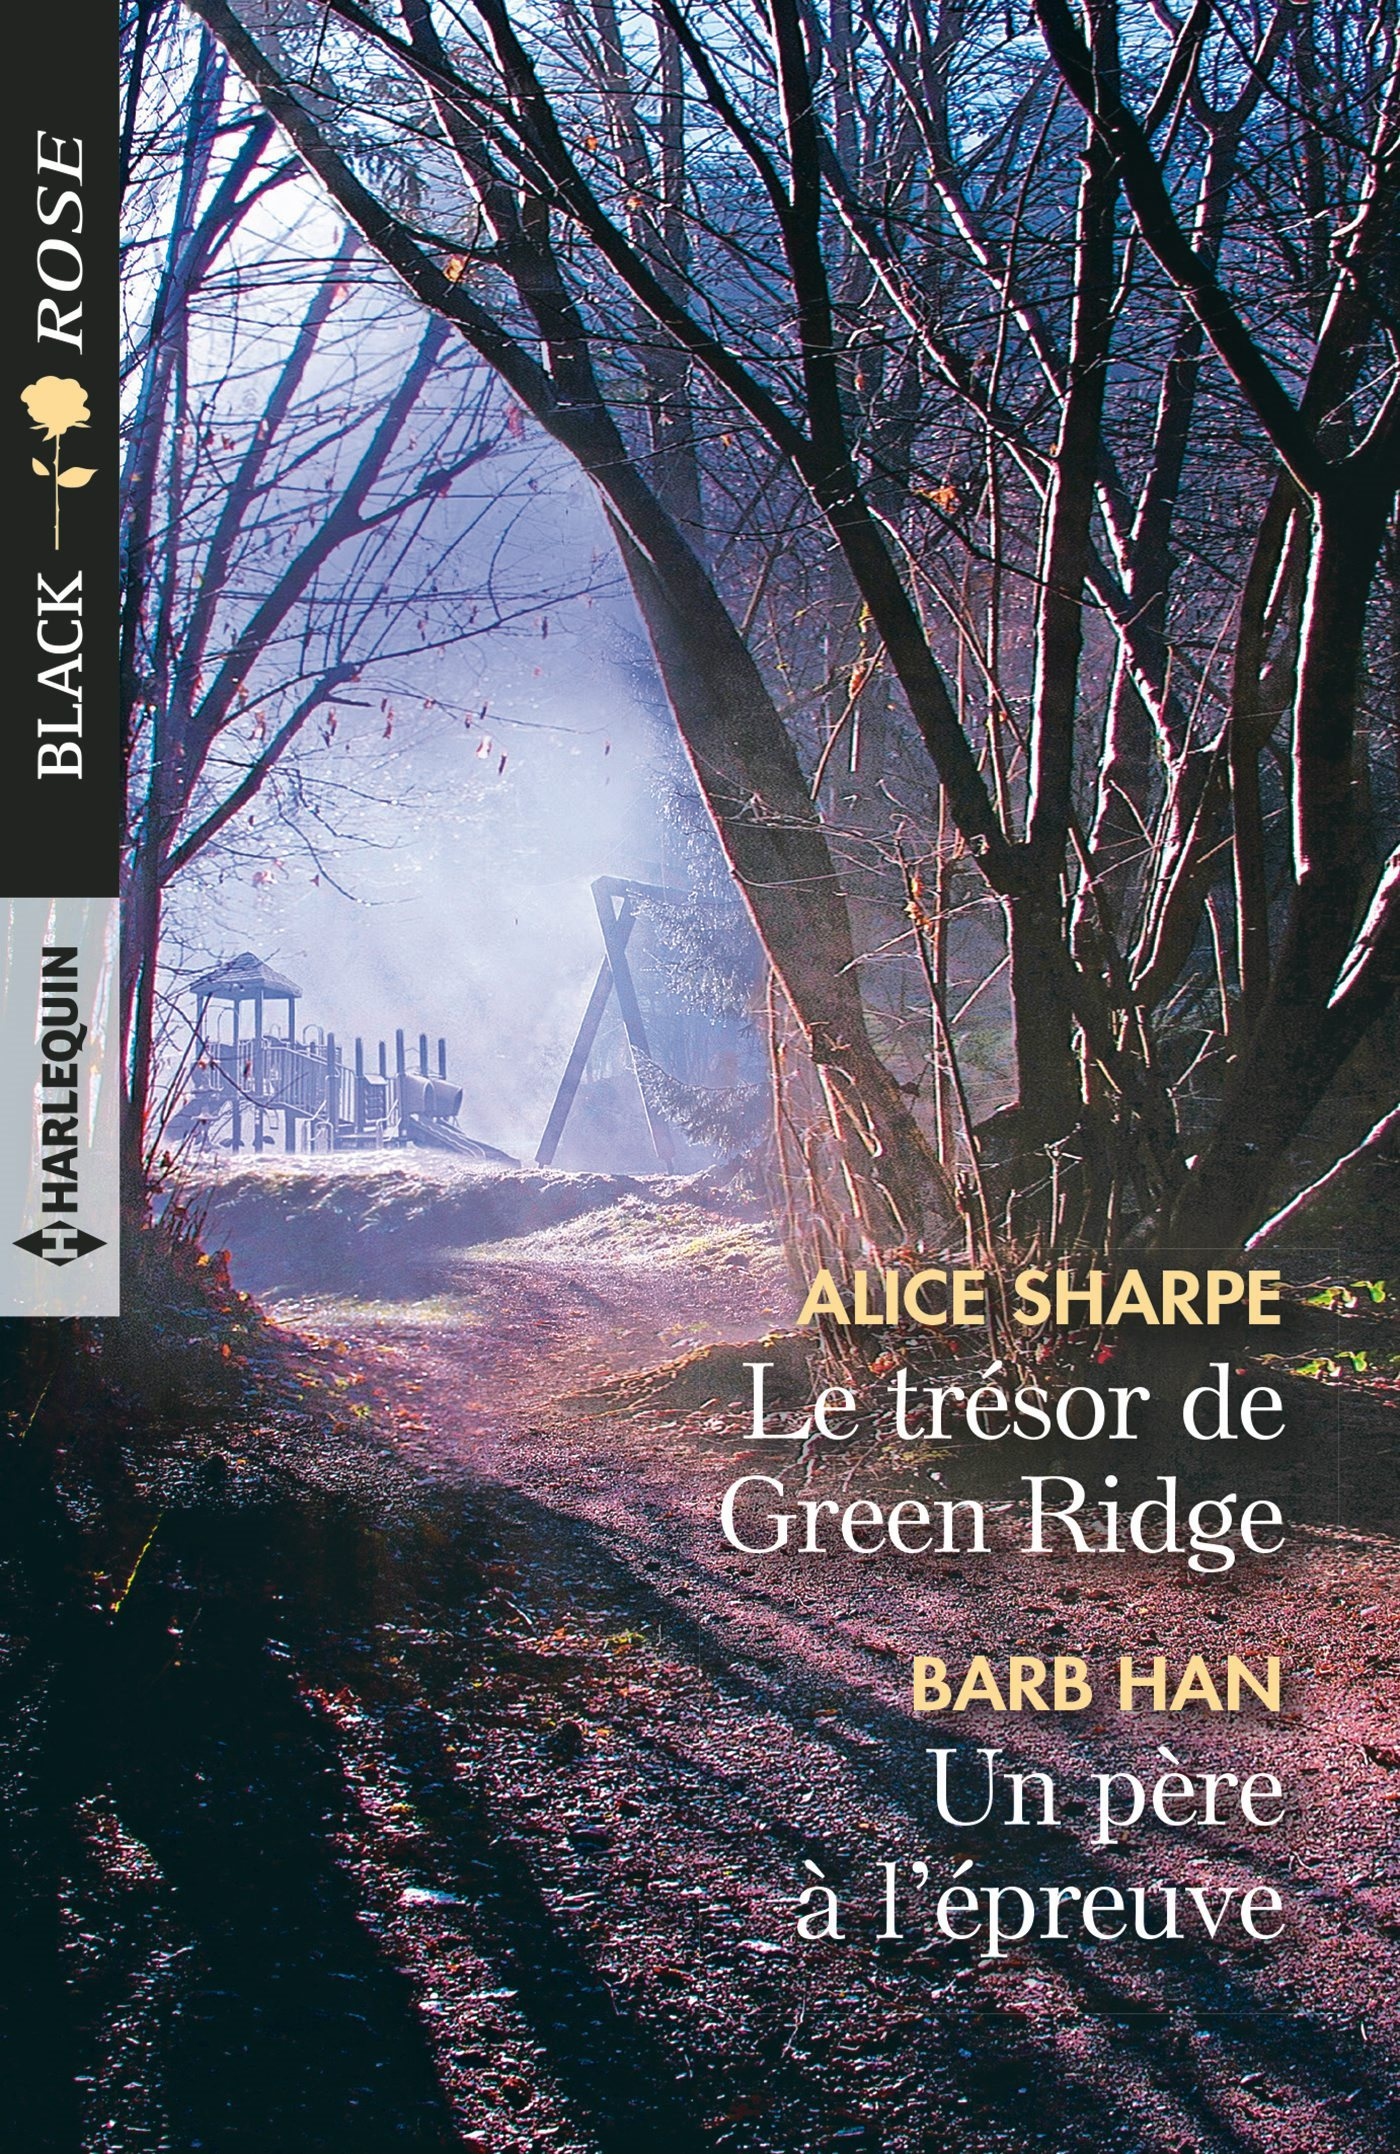 Couverture : Vickie Taylor, Trompeuses évidences, Harlequin